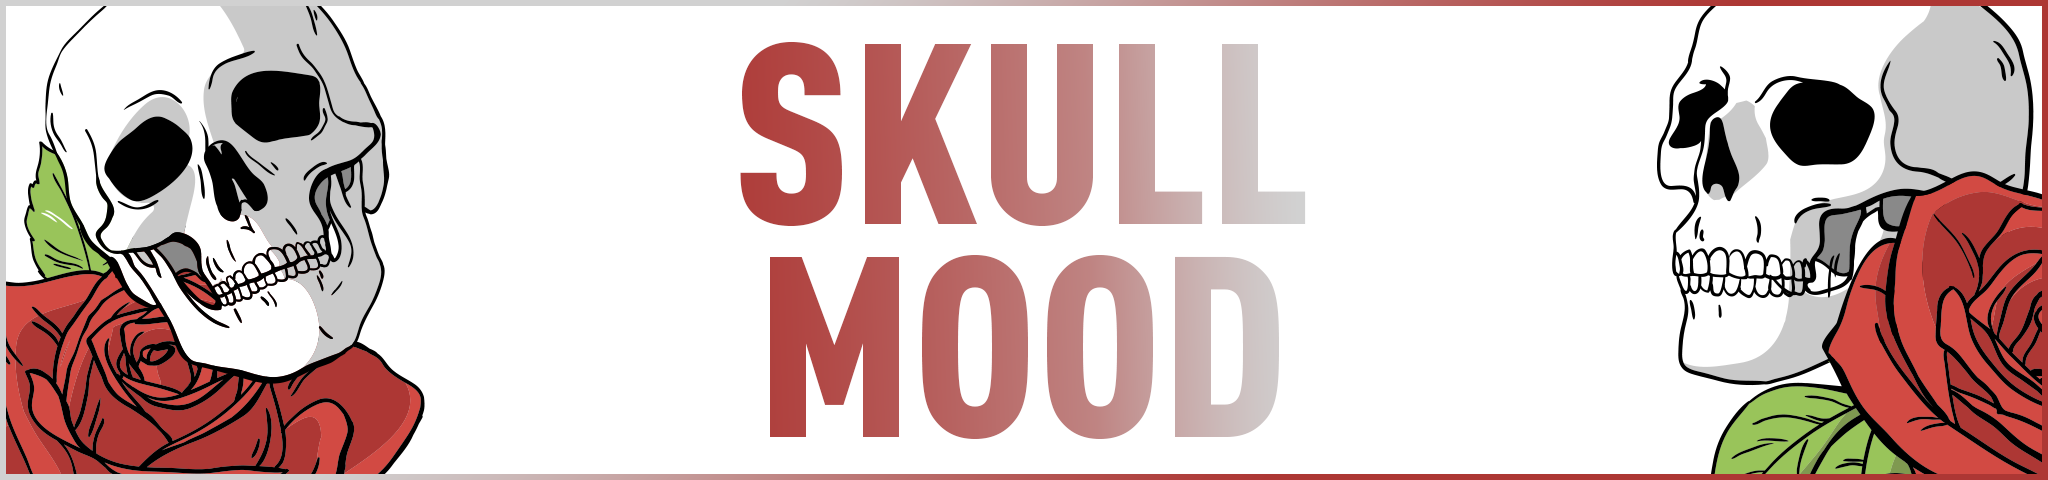 Collezione Teschio - Skull Mood Collection - Orologi Doodle